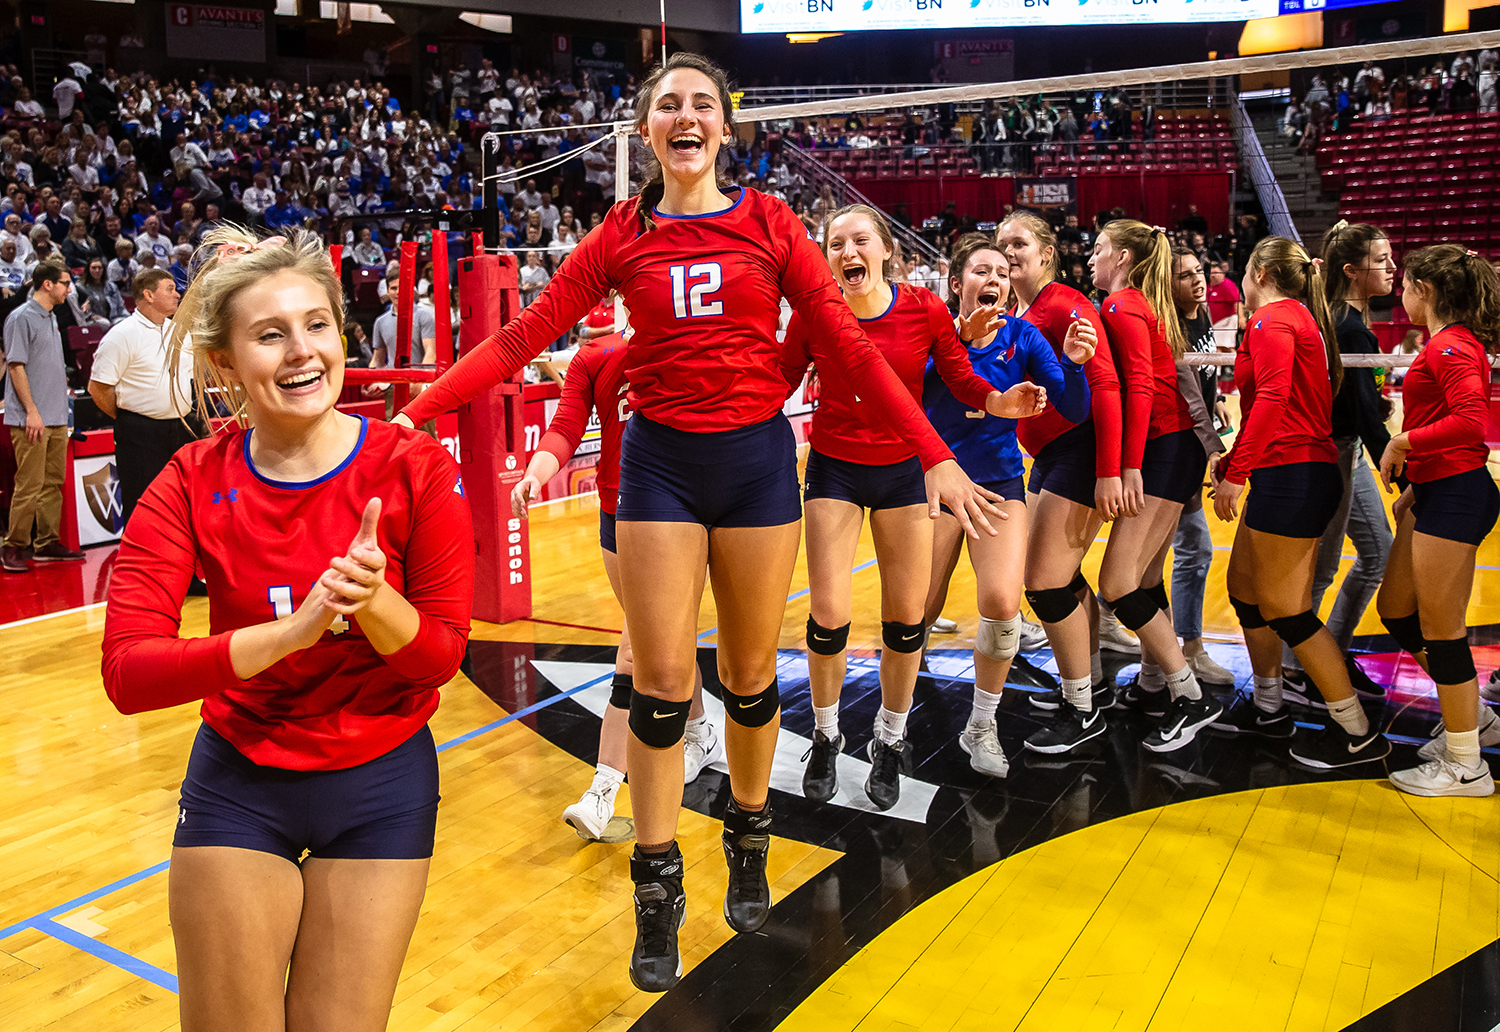 Pleasant Plains' Maddie Reiser (12) and the Cardinals celebrate their victory over Champaign St. Thomas More during the Class 2A IHSA Volleyball State Final Tournament semifinals at Redbird Arena, Friday, Nov. 9, 2018, in Normal, Ill. [Justin L. Fowler/The State Journal-Register]